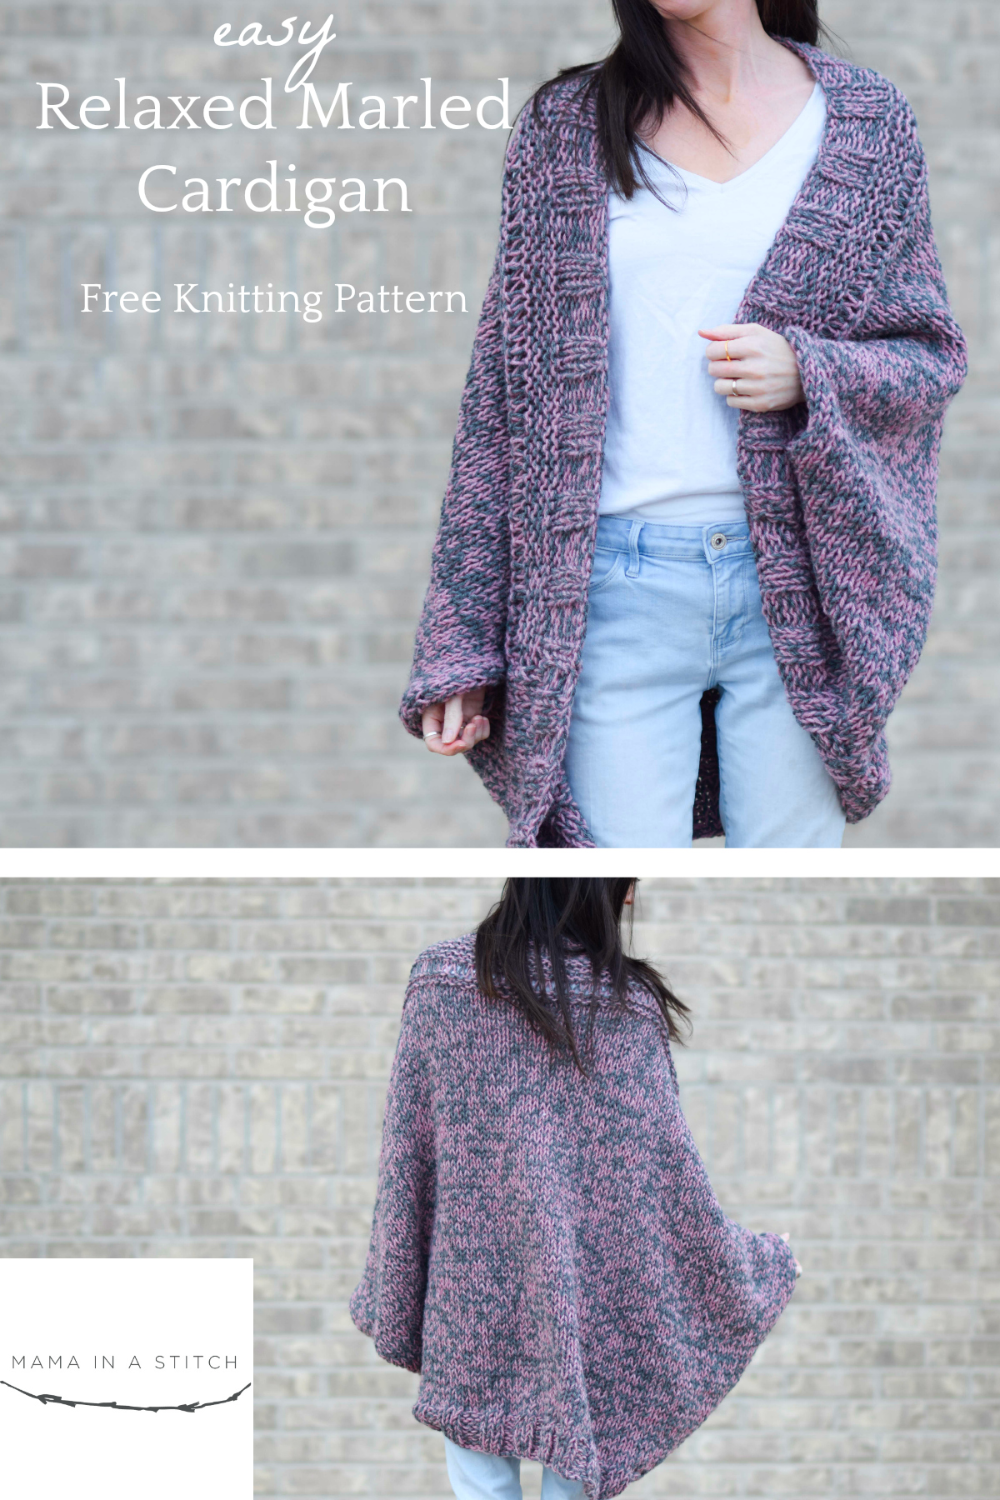 Easy Relaxed Marled Cardigan Knitting Pattern